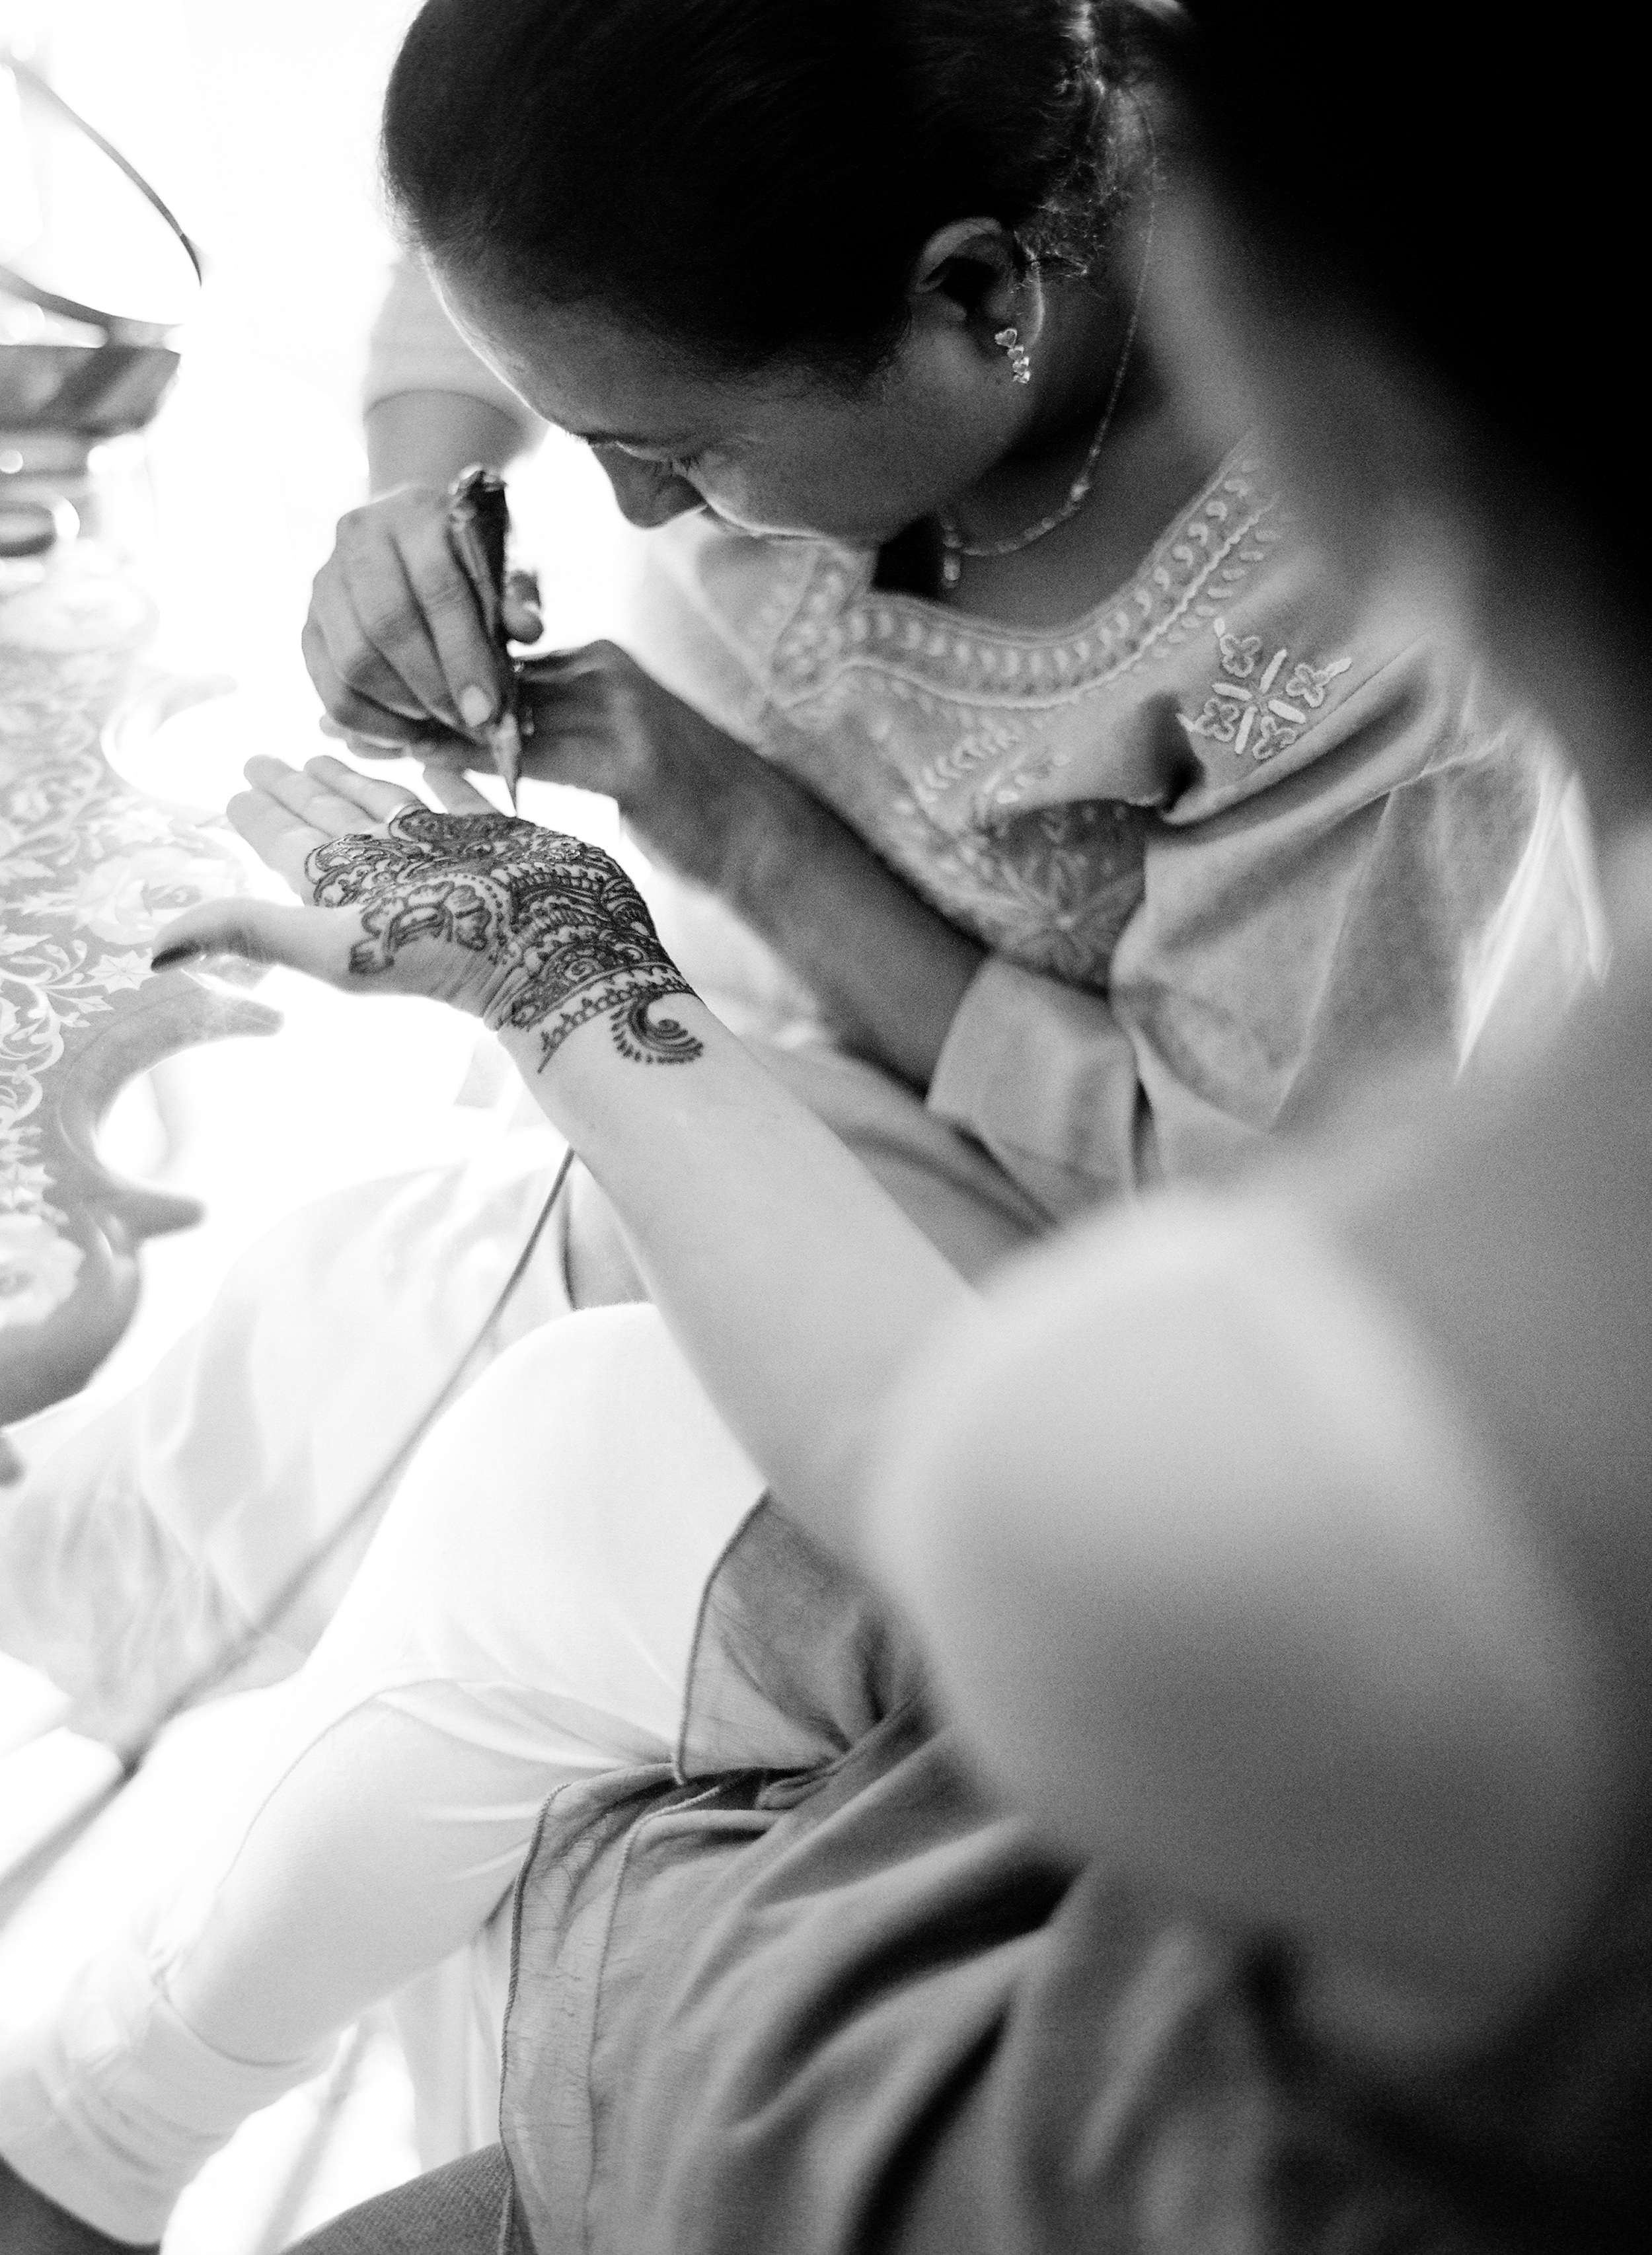 beautiful mehndi designs are done with henna at this beautiful hindu wedding in florida photographed by Destination Wedding Photographer LExia Frank, a top indian wedding photographer, who photographs her luxury indian weddings on film preferring it's tonal range and bright colors for indian weddings in india, florida and worldwide. her brides love maharani weddings, south asian bride, suneet varma and manish malhotra